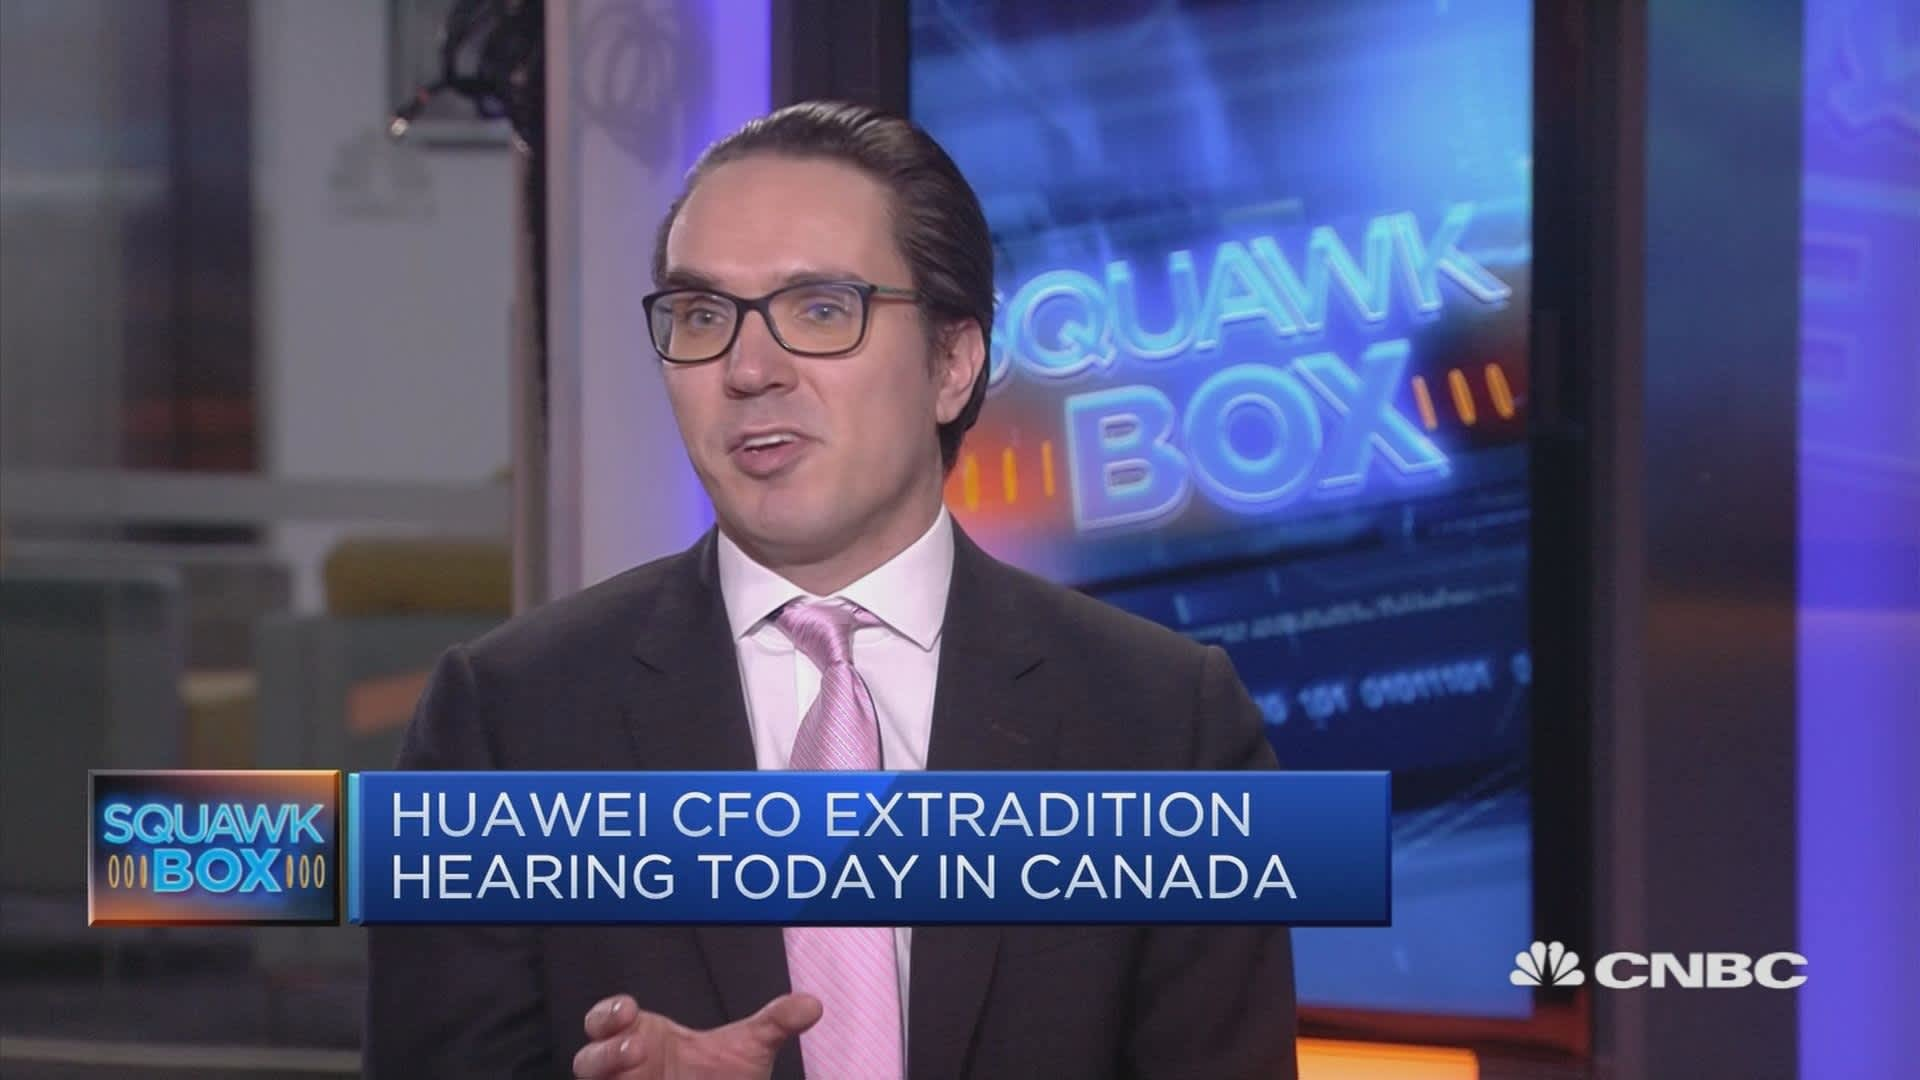 Europe can build 5G network without Huawei, analyst says